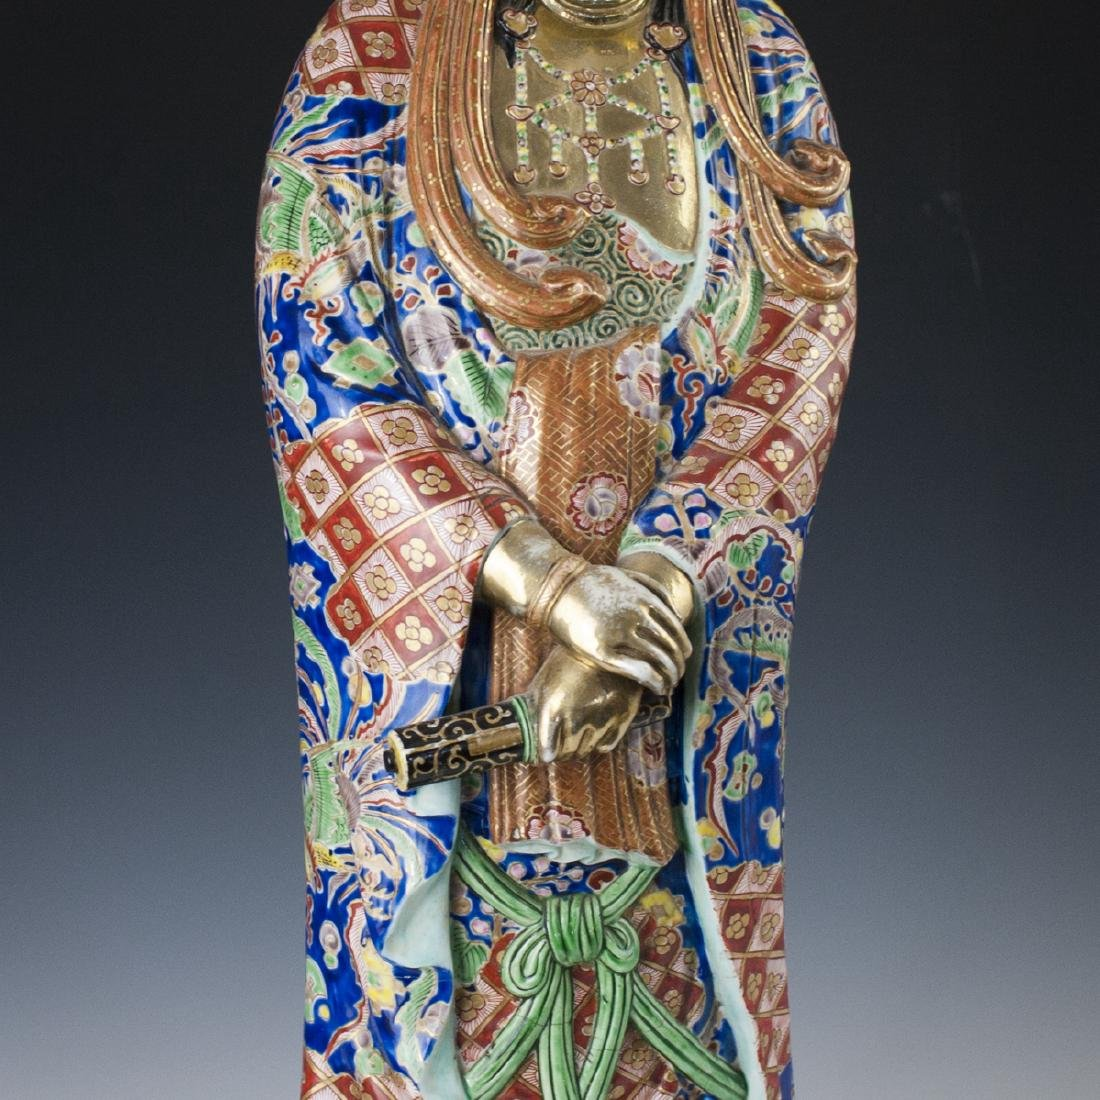 Antique Chinese Enameled Porcelain Guanyin - 5